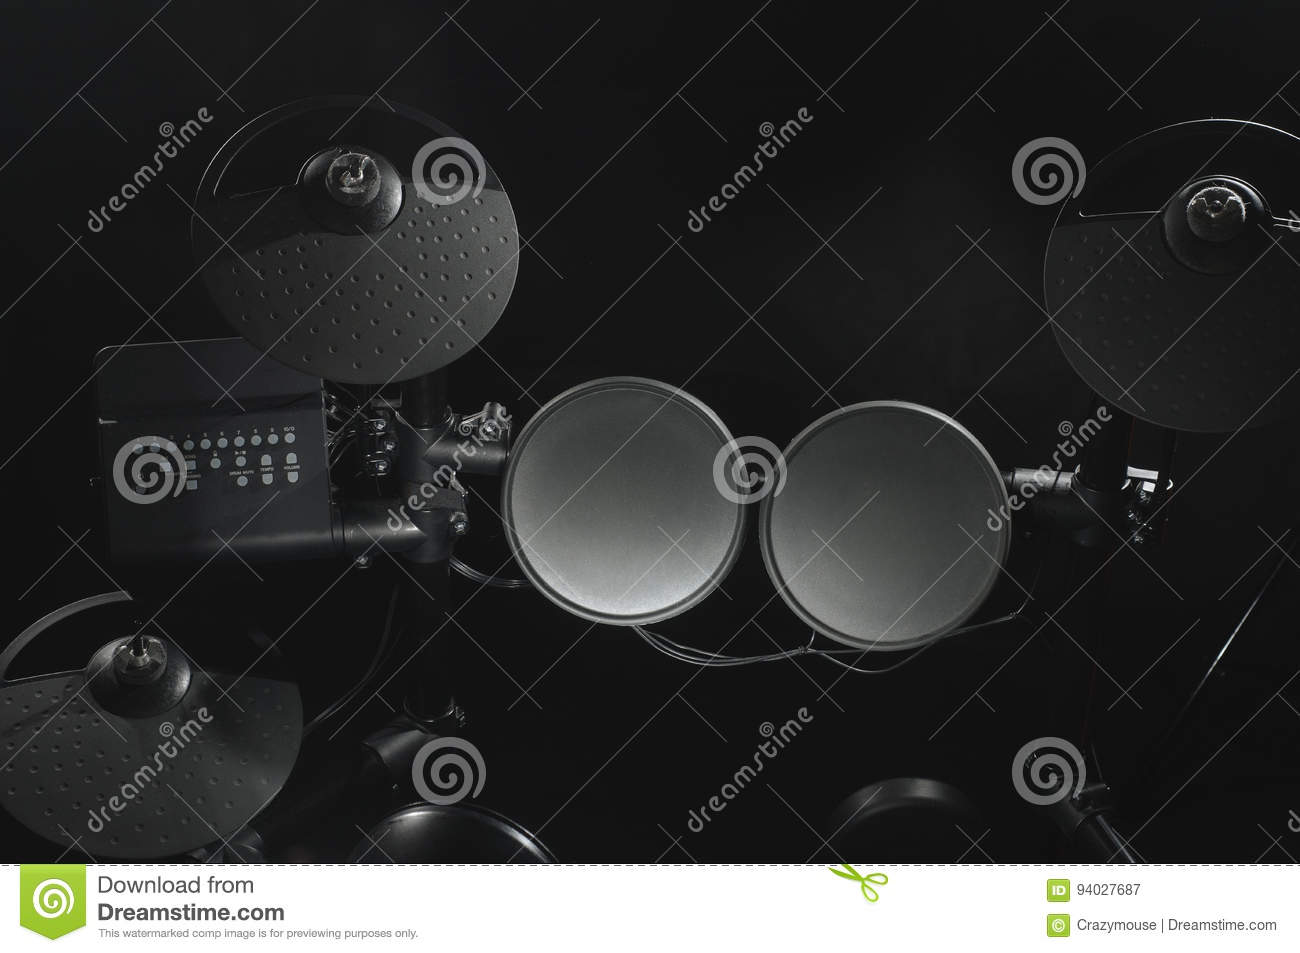 Diagram Of Old Drum Residential Electrical Symbols Set Top View An Electronic Kit On Black Background Close Up Rh Dreamstime Com Setup